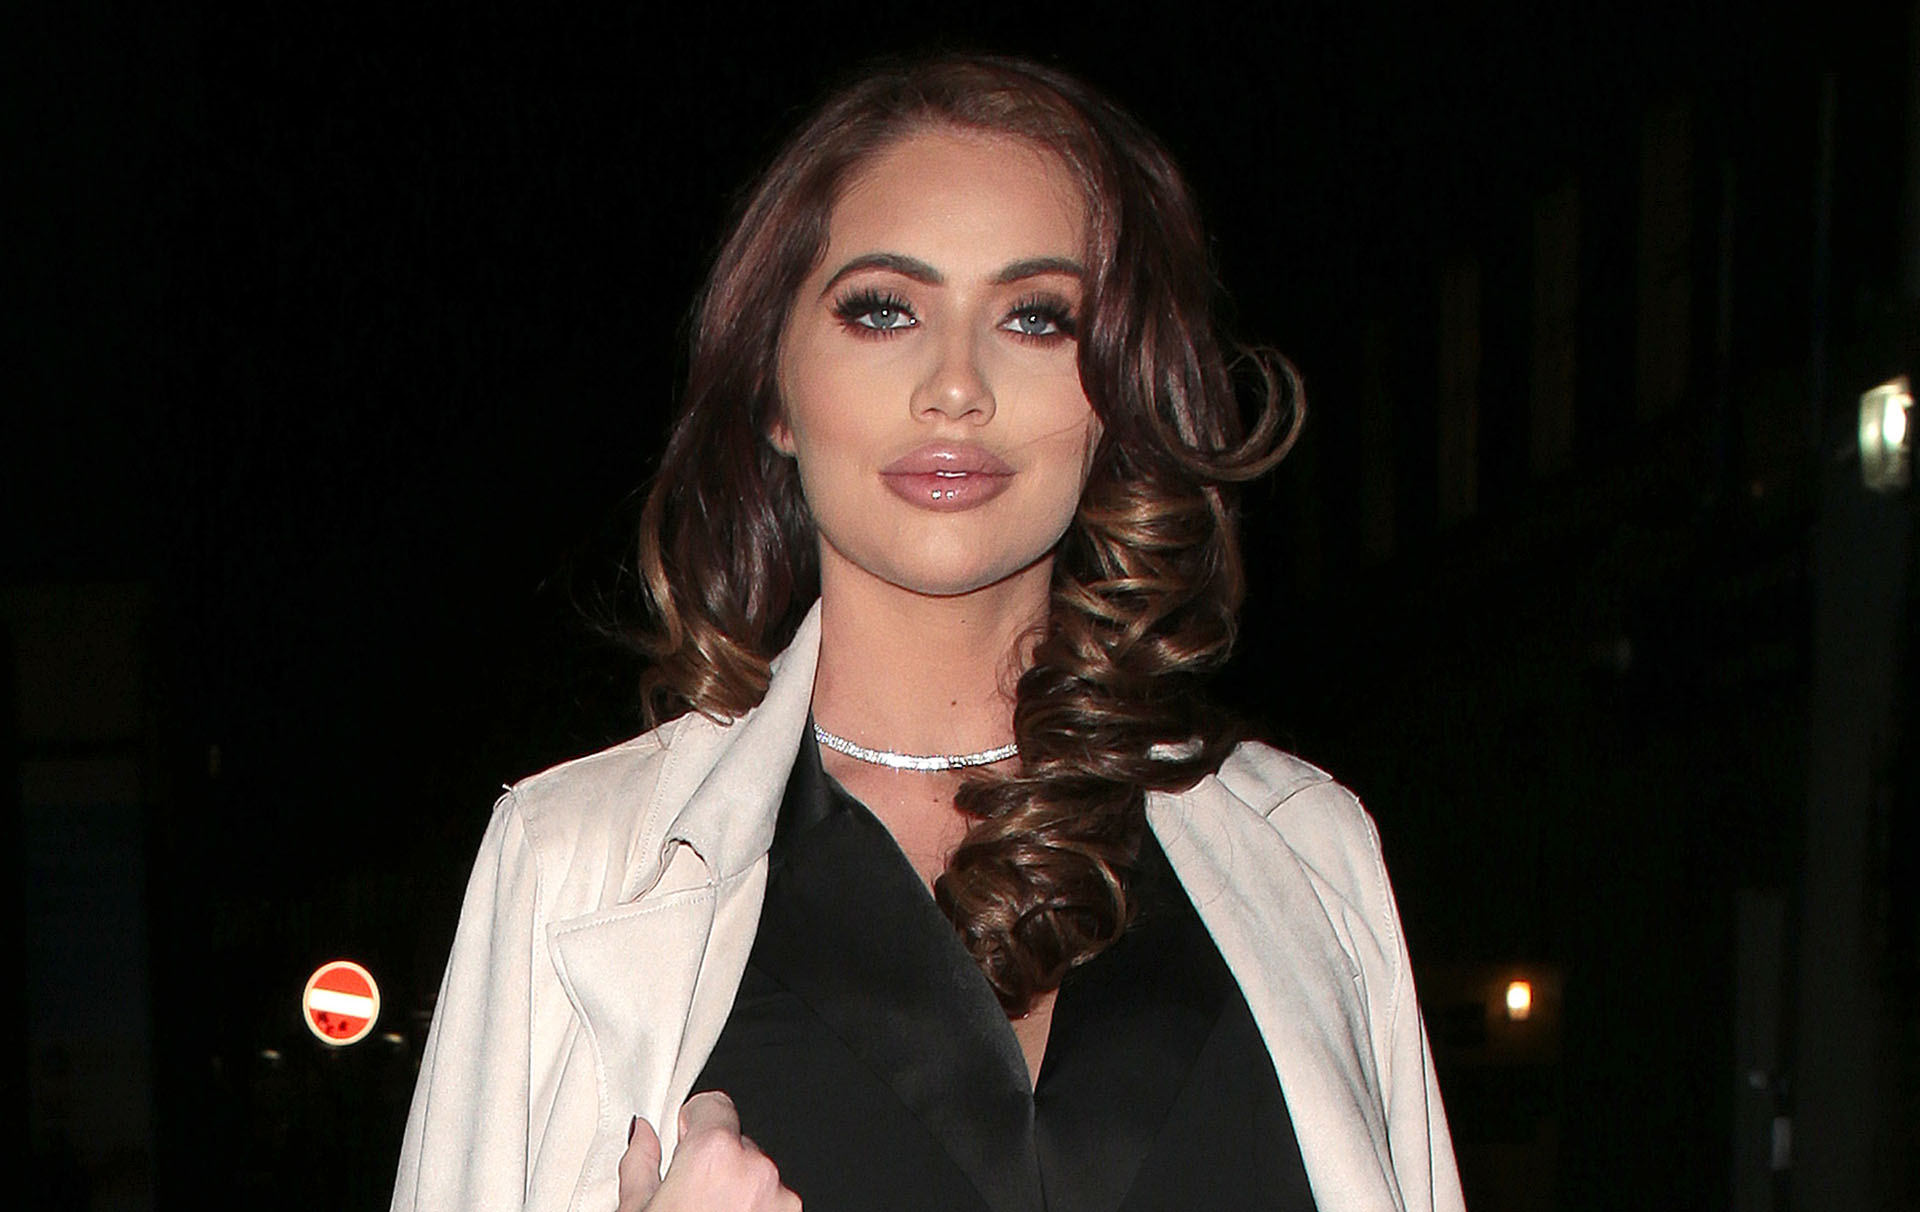 Amy Childs coffee weight loss aid